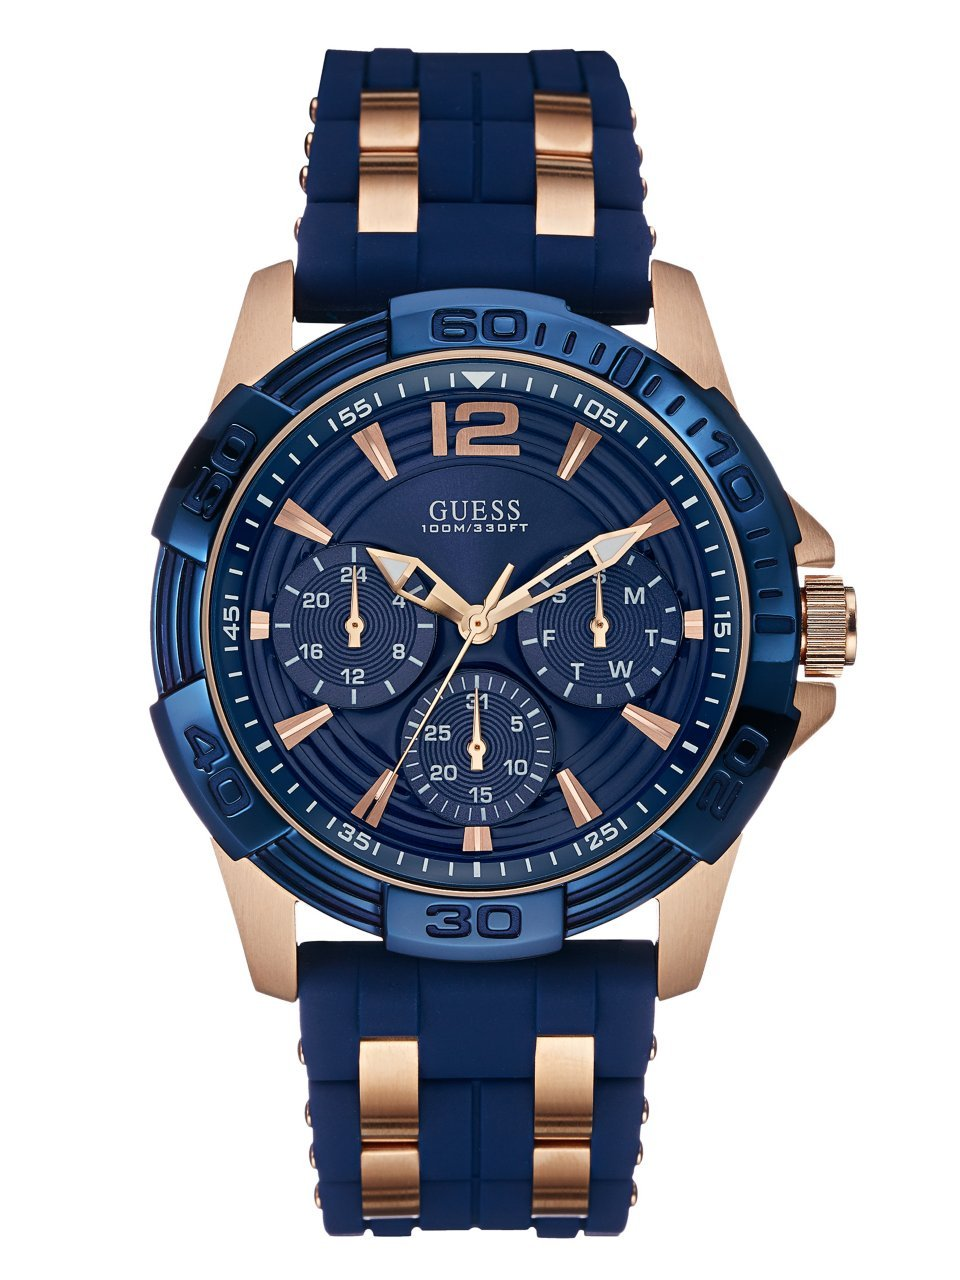 GUESS  Comfortable Blue Stain Resistant Silicone + Rose Gold-Tone Stainless Steel Watch with Day, Date + 24 Hour Military/Int'l Time. Color: Blue (Model: U0366G2)